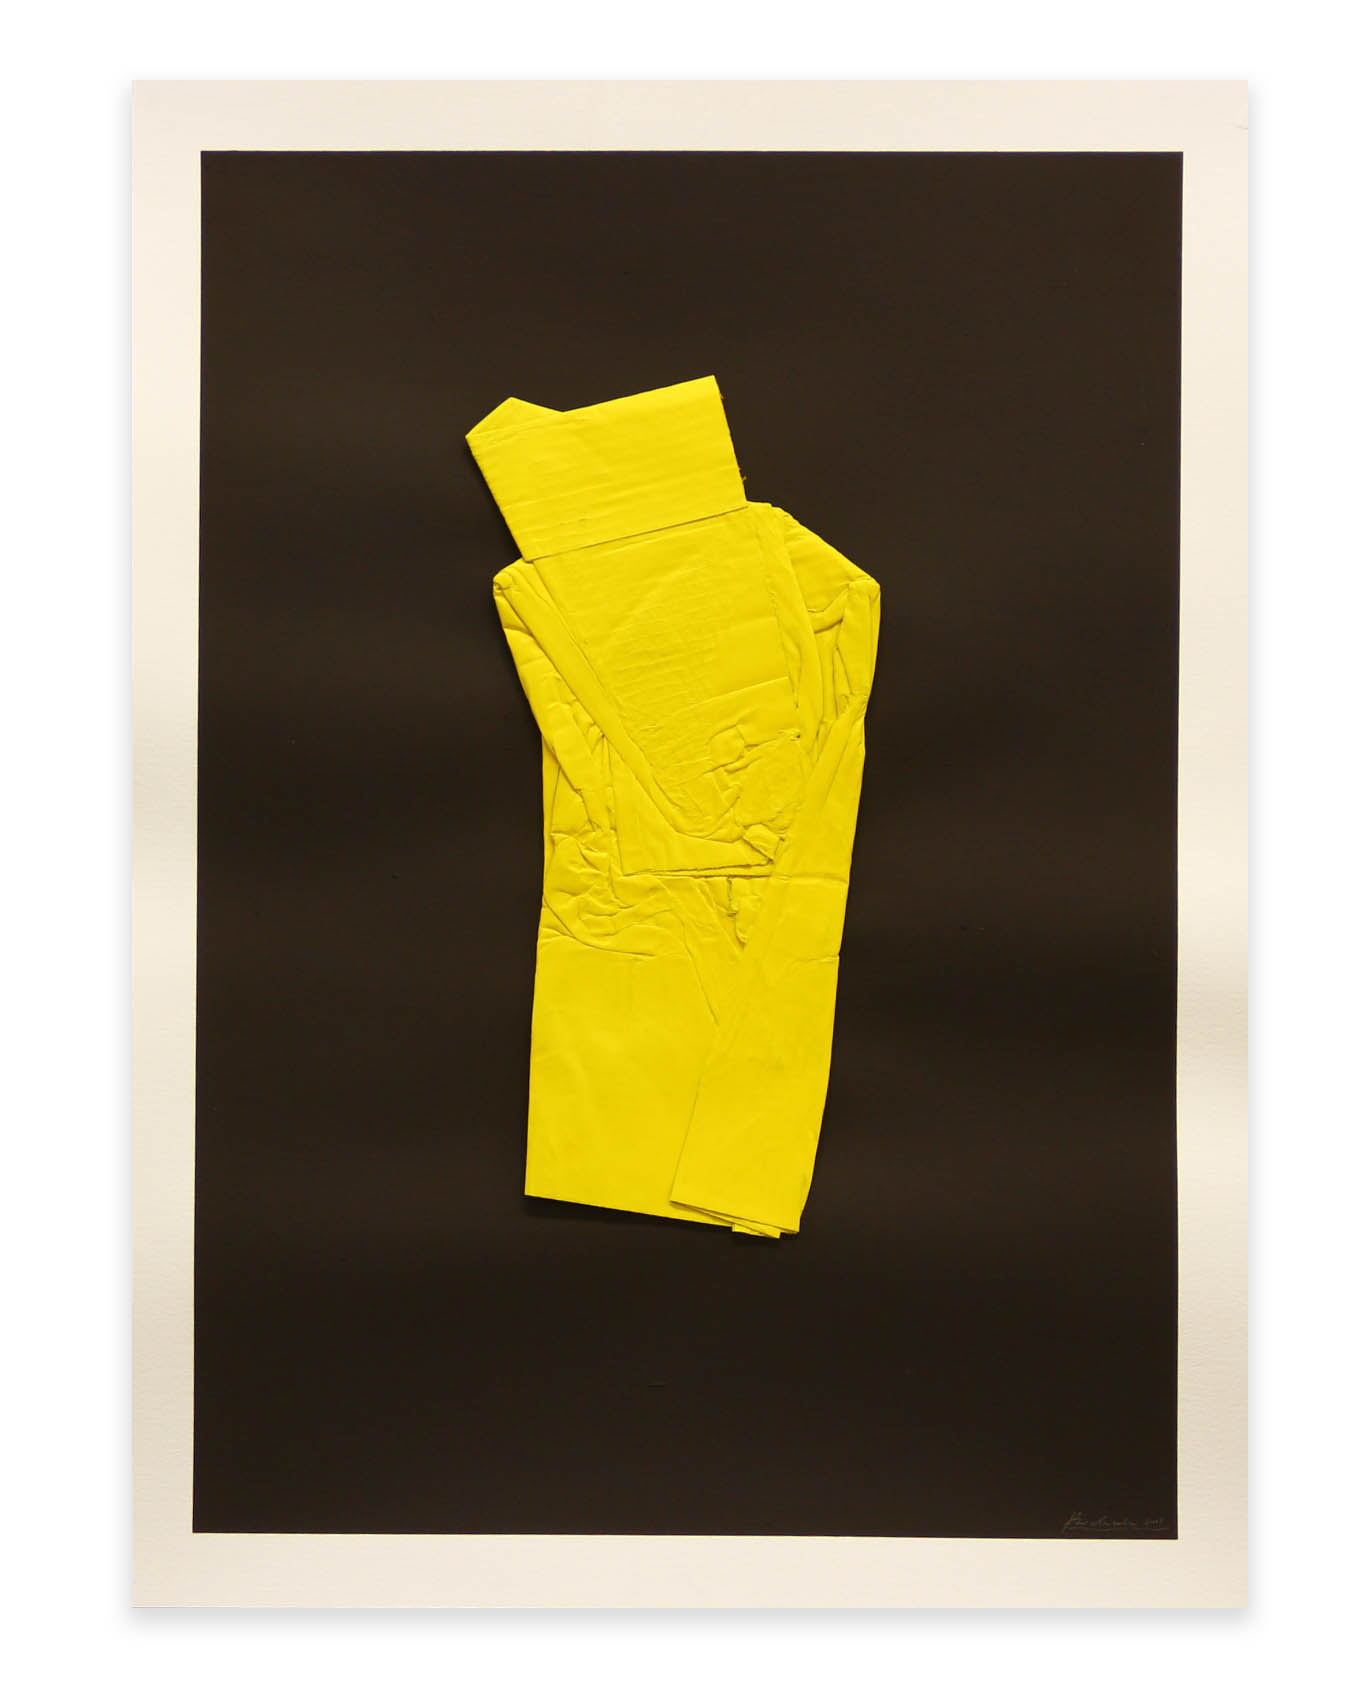 Pressed Cadmium Yellow  - 2017  Acrylic pigment, spray paint and cardboard on paper  76 x 56 cm